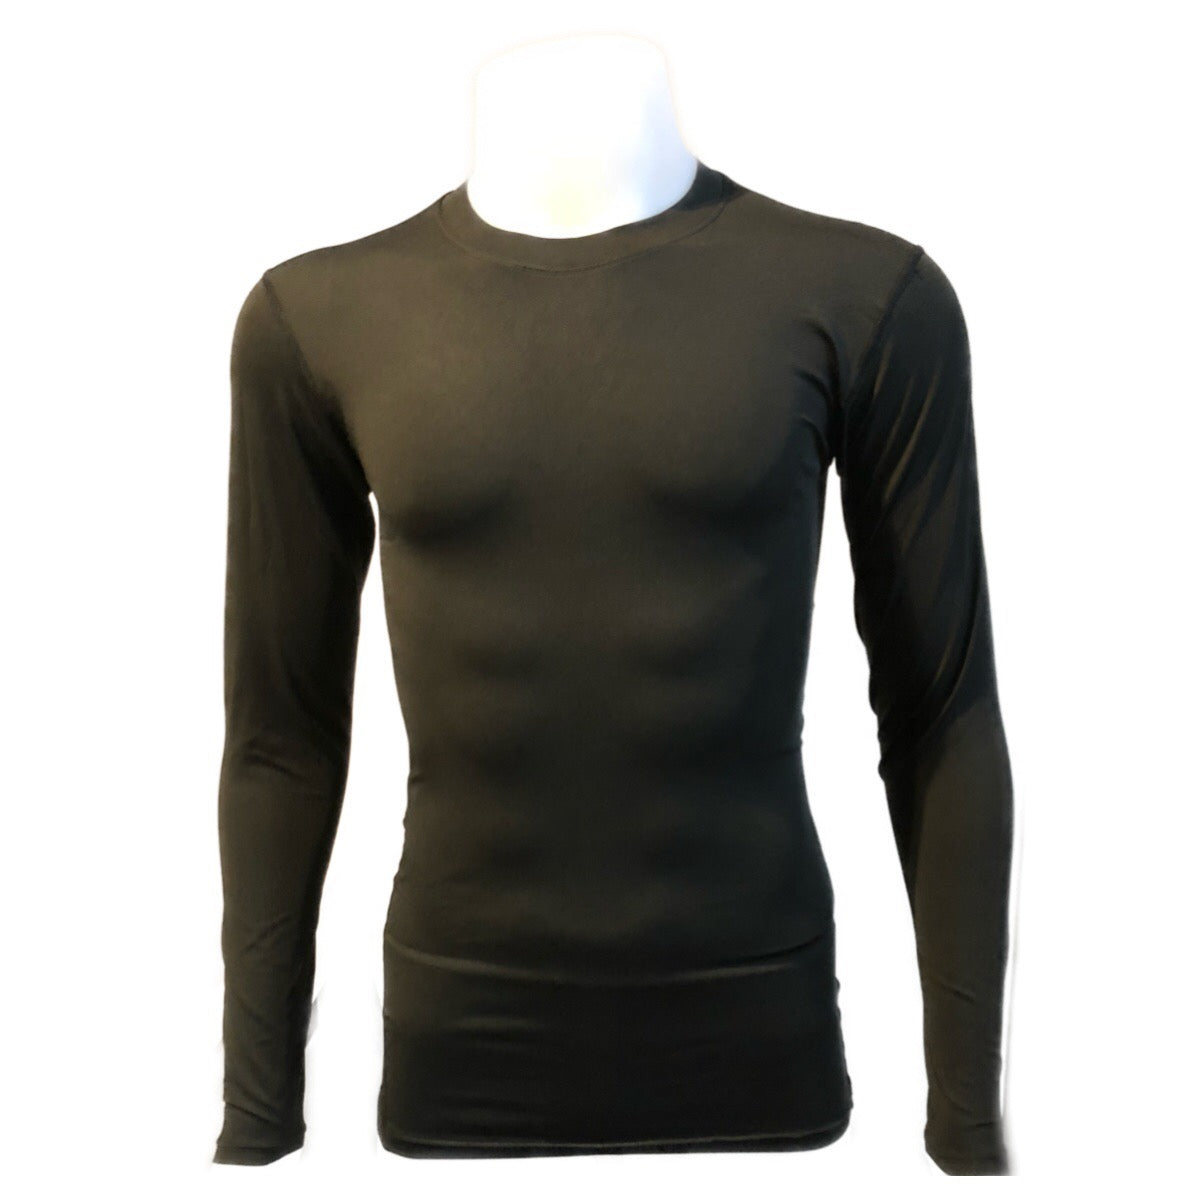 Pro Combat Long Sleeve Top Compression Tights in Black (New)